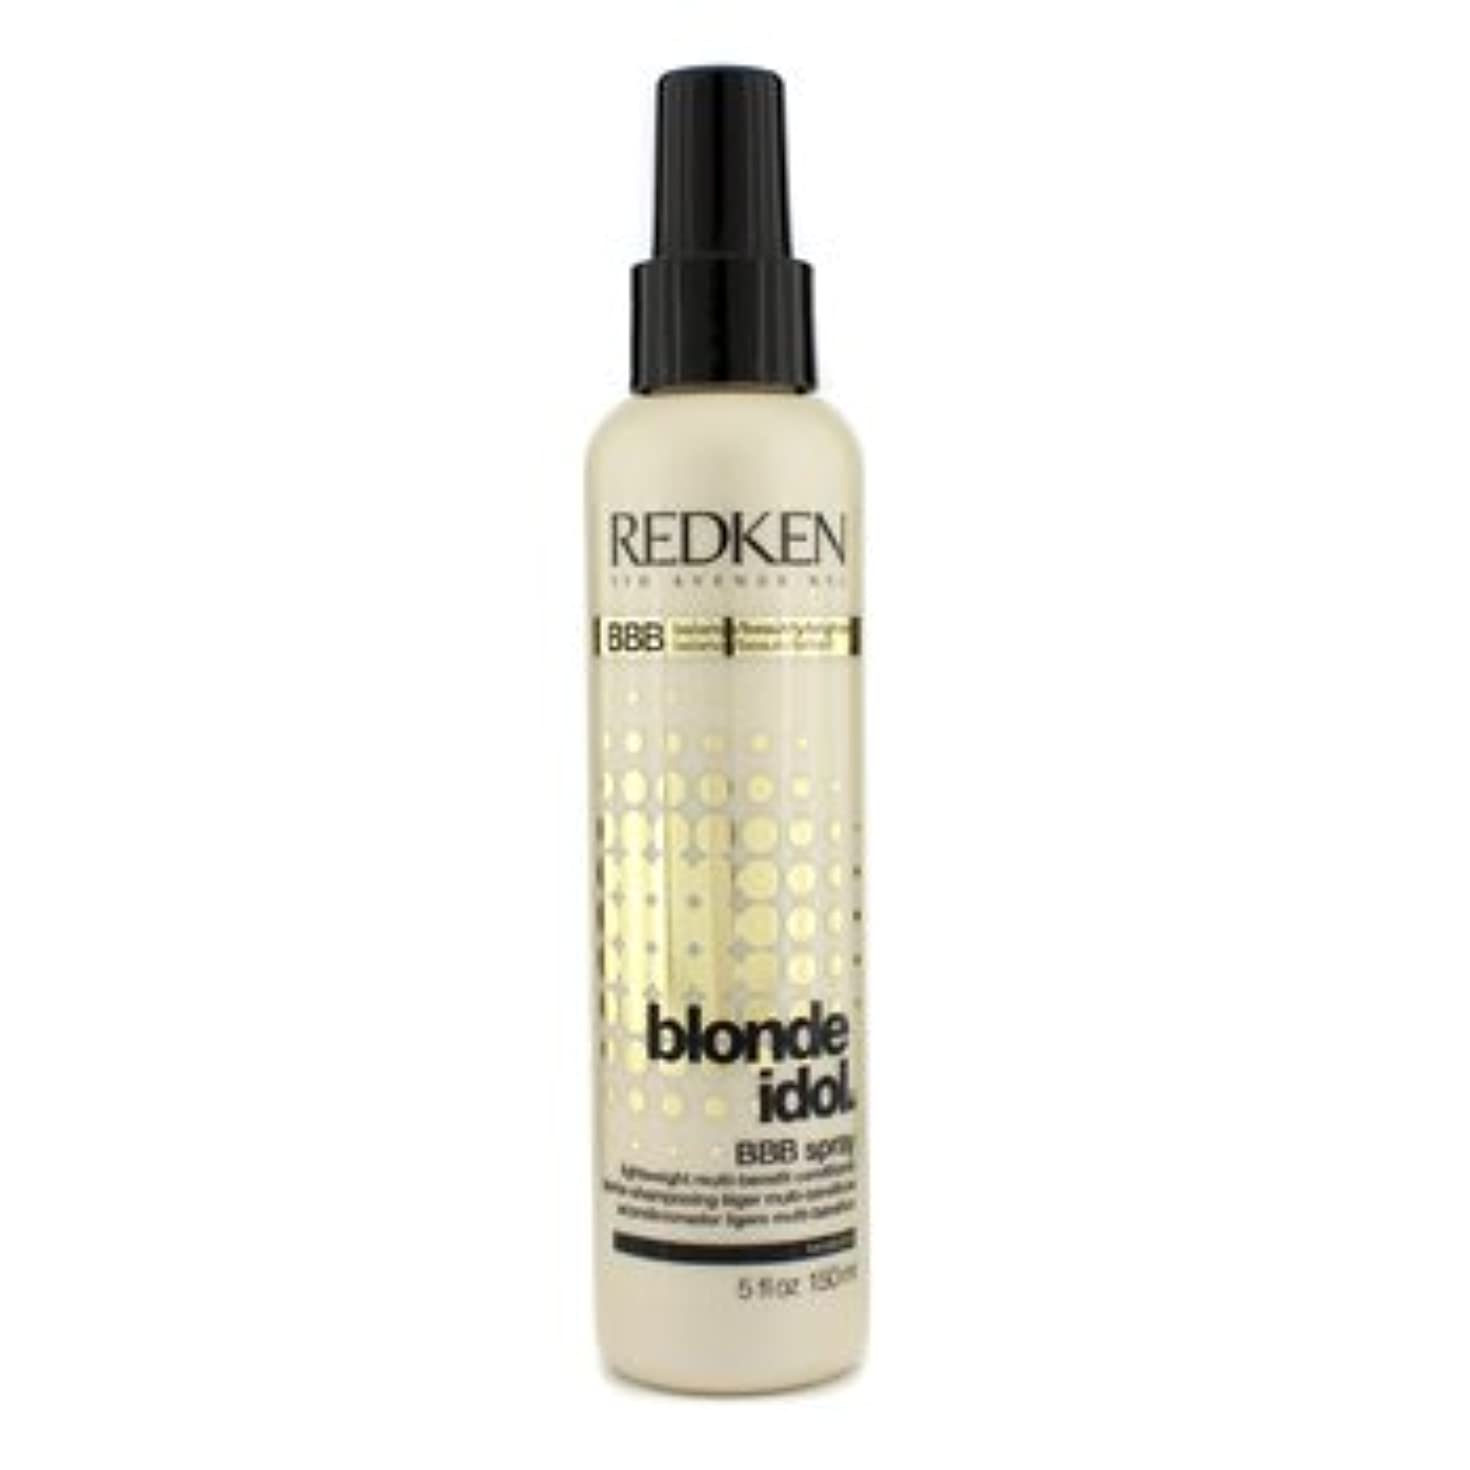 衣装ピンチ常習的[Redken] Blonde Idol BBB Spray Lightweight Multi-Benefit Conditioner (For Beautiful Blonde Hair) 150ml/5oz